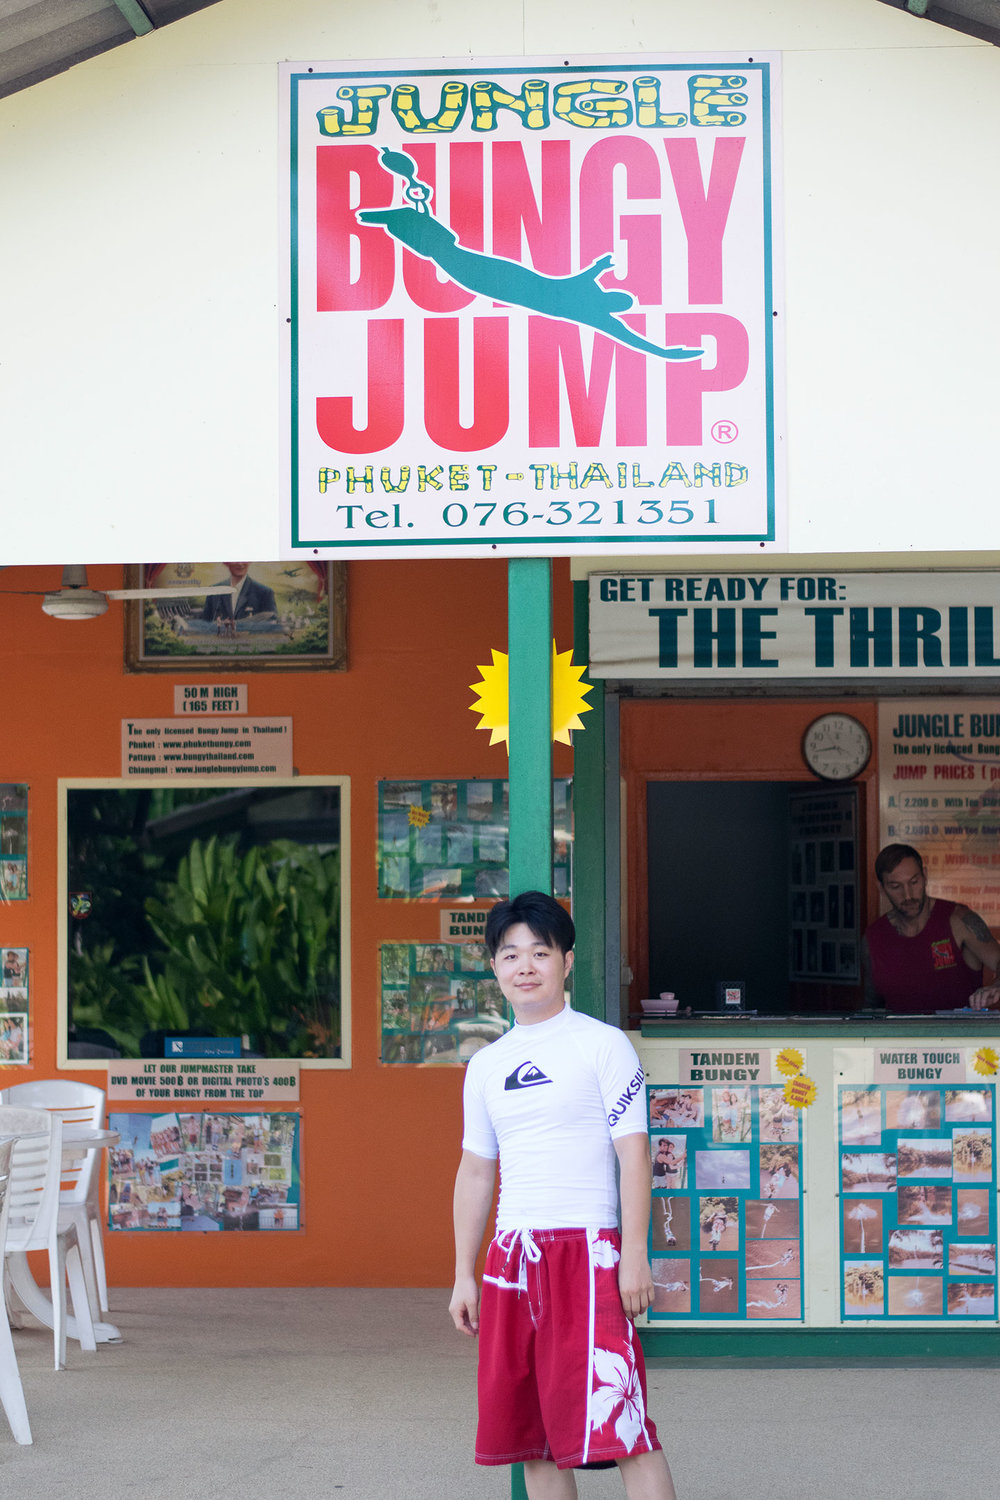 BUNGEE JUMPING:  While I am too scared to try this myself, our friend Danny went bungee jumping at   Phuket Jungle Bungy Jump  . Try it out if you're a daredevil!